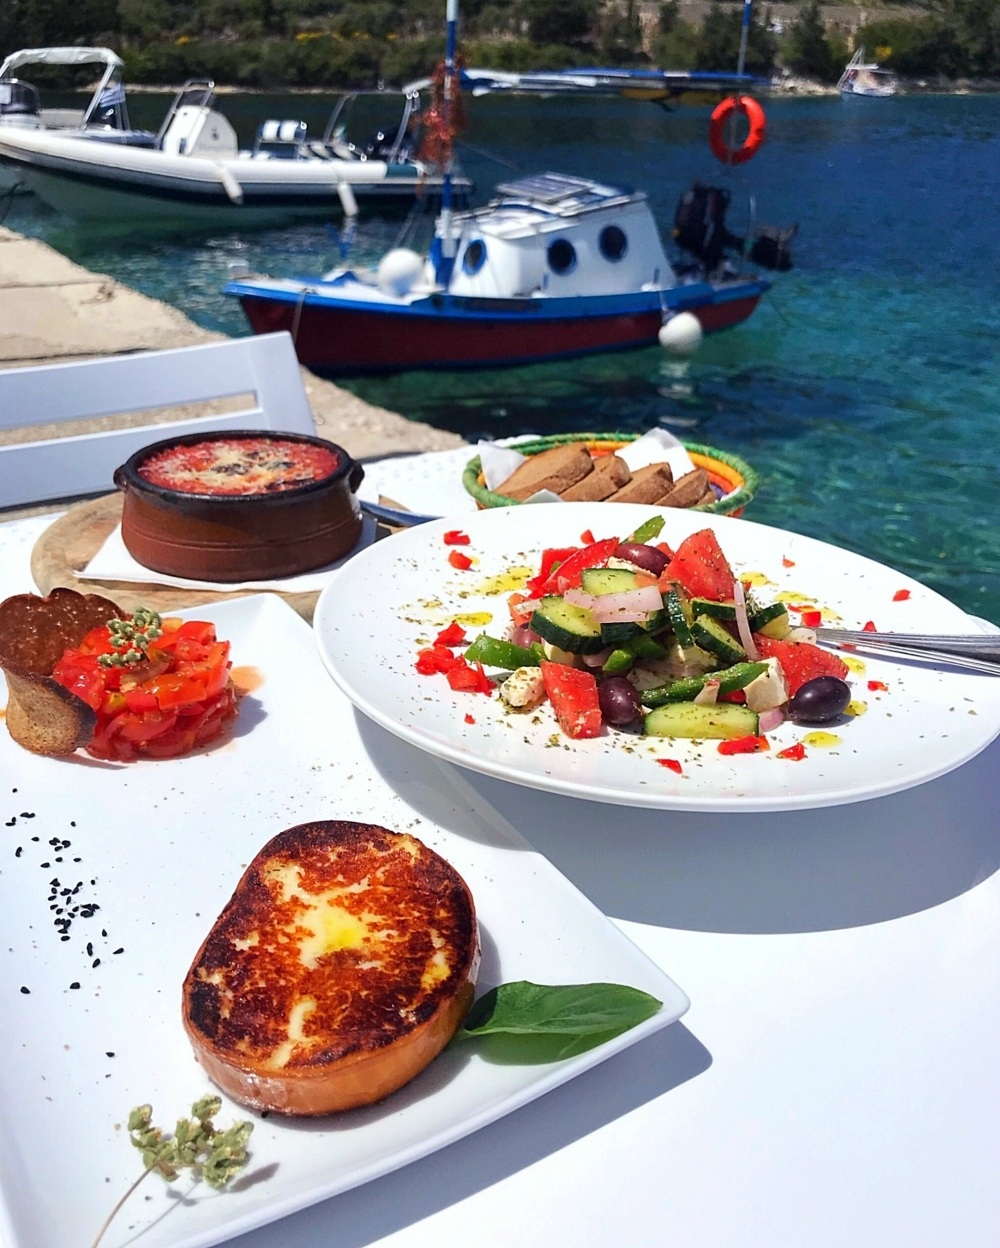 Lunch at Carnayo Gold at Mongonissi bay in Paxos Photo Heatheronhertravels.com